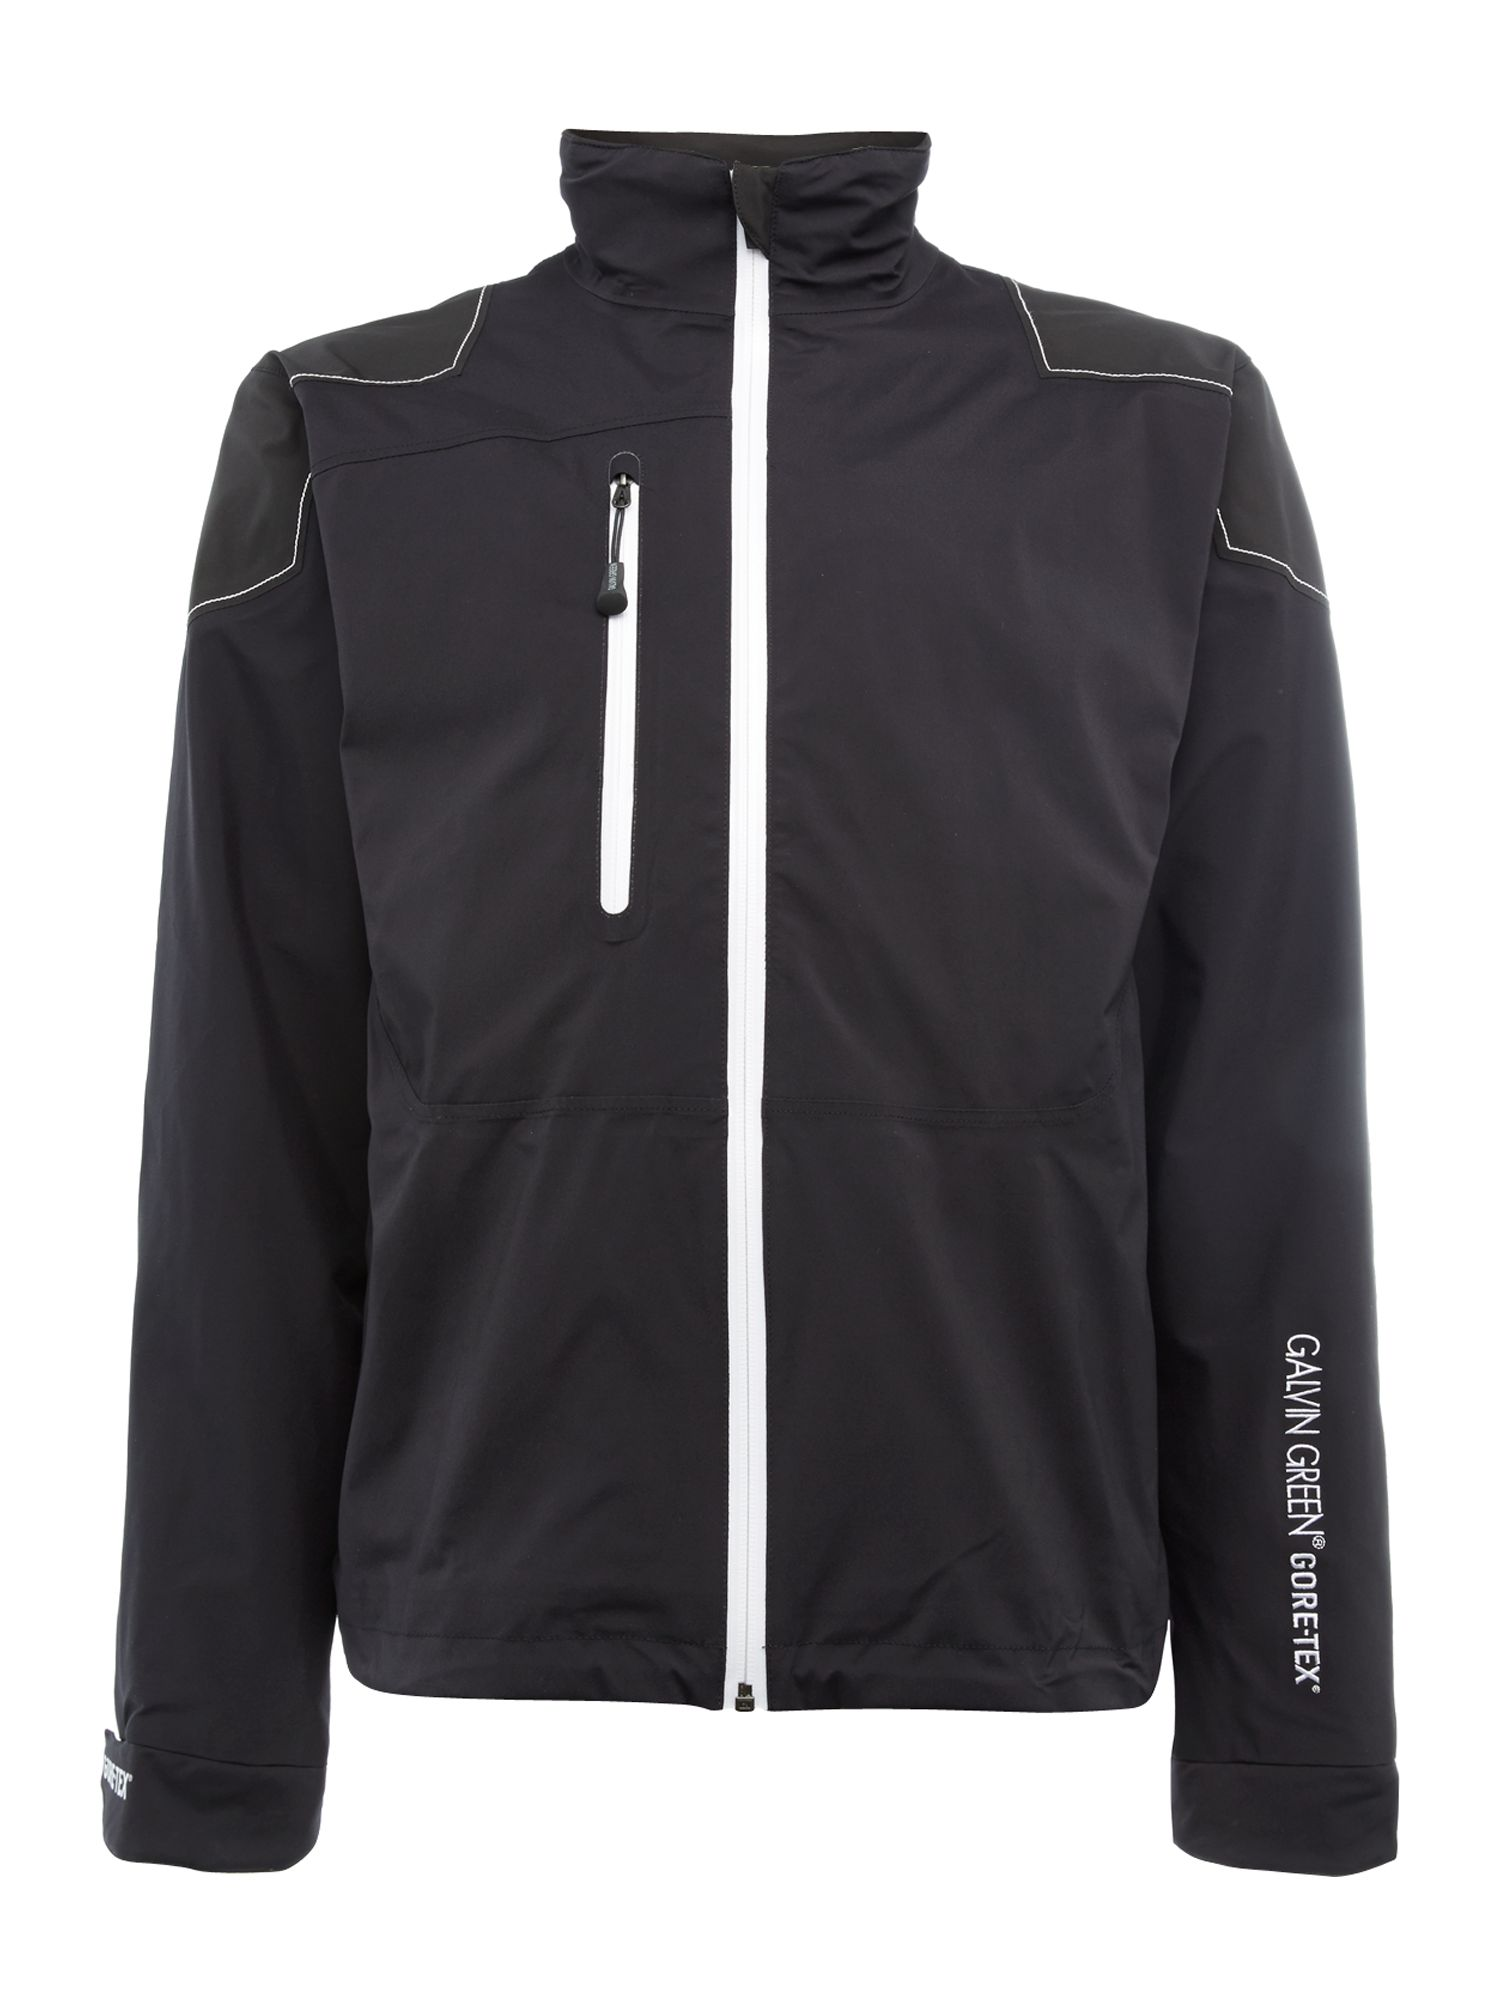 Alex goretex jacket